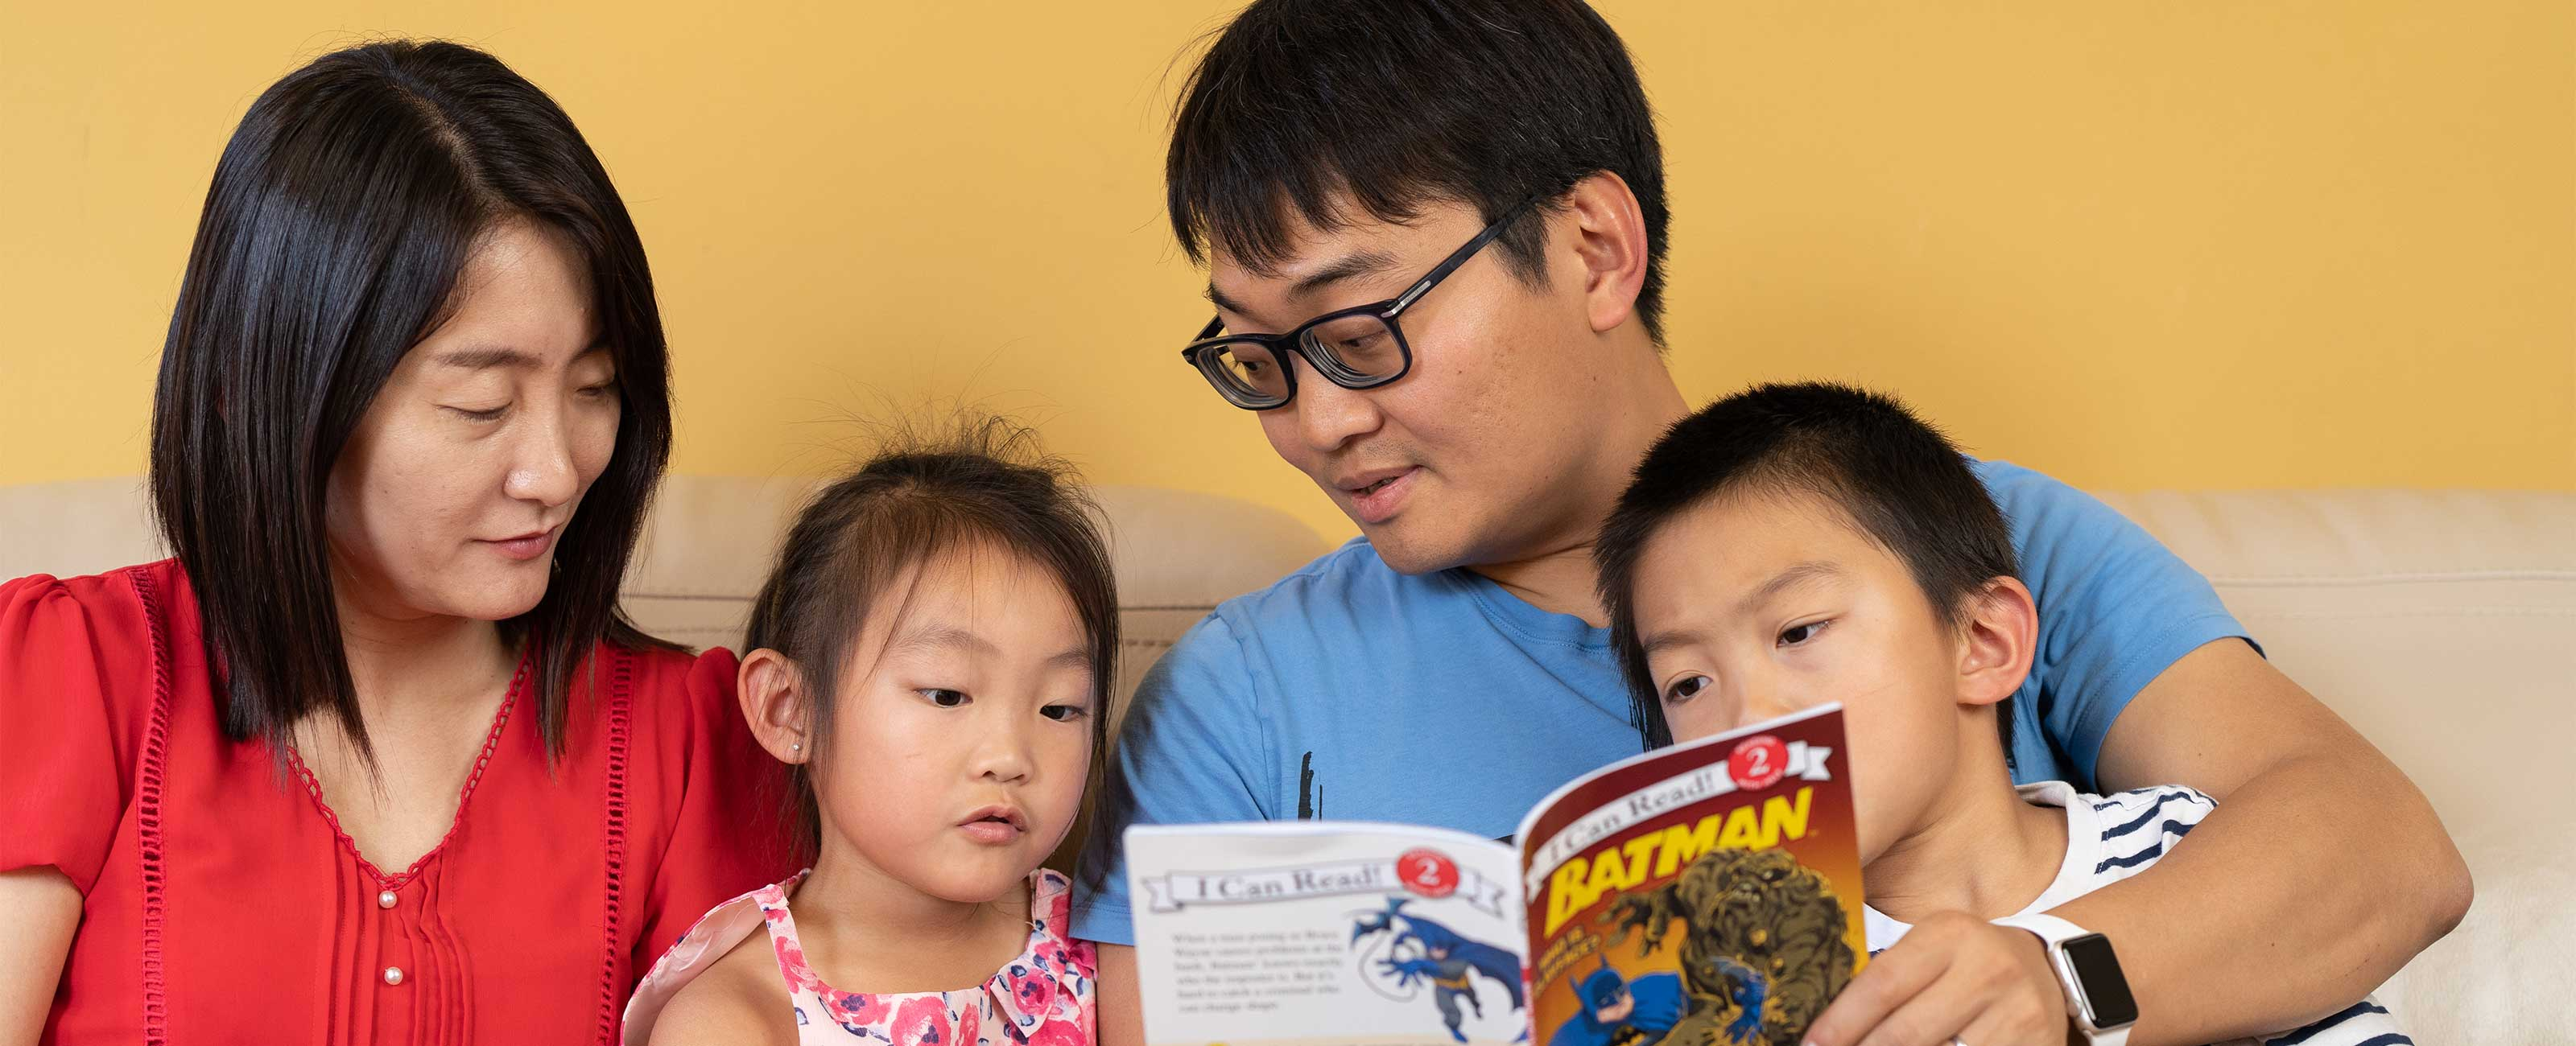 2x-embed-story-yuan-shi-and-family-reading-a-book-Photo-12